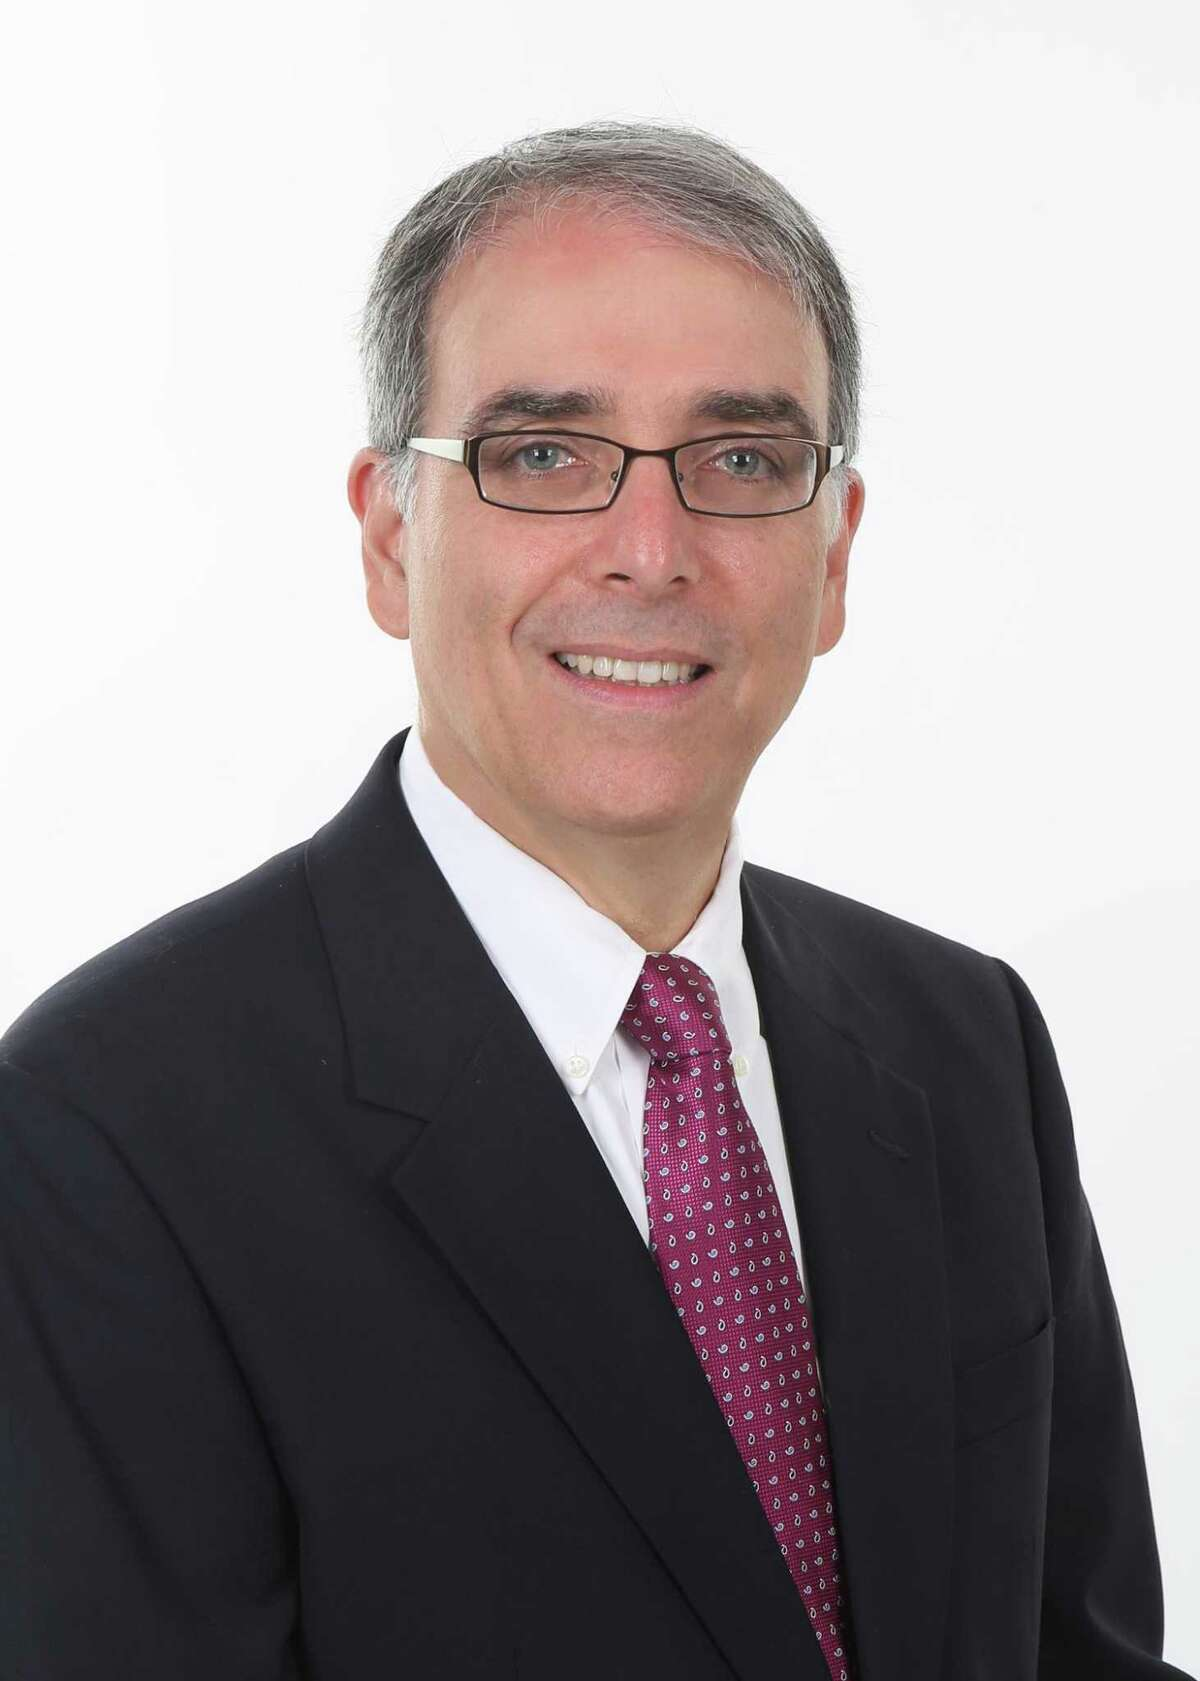 Russell L. Abrahms